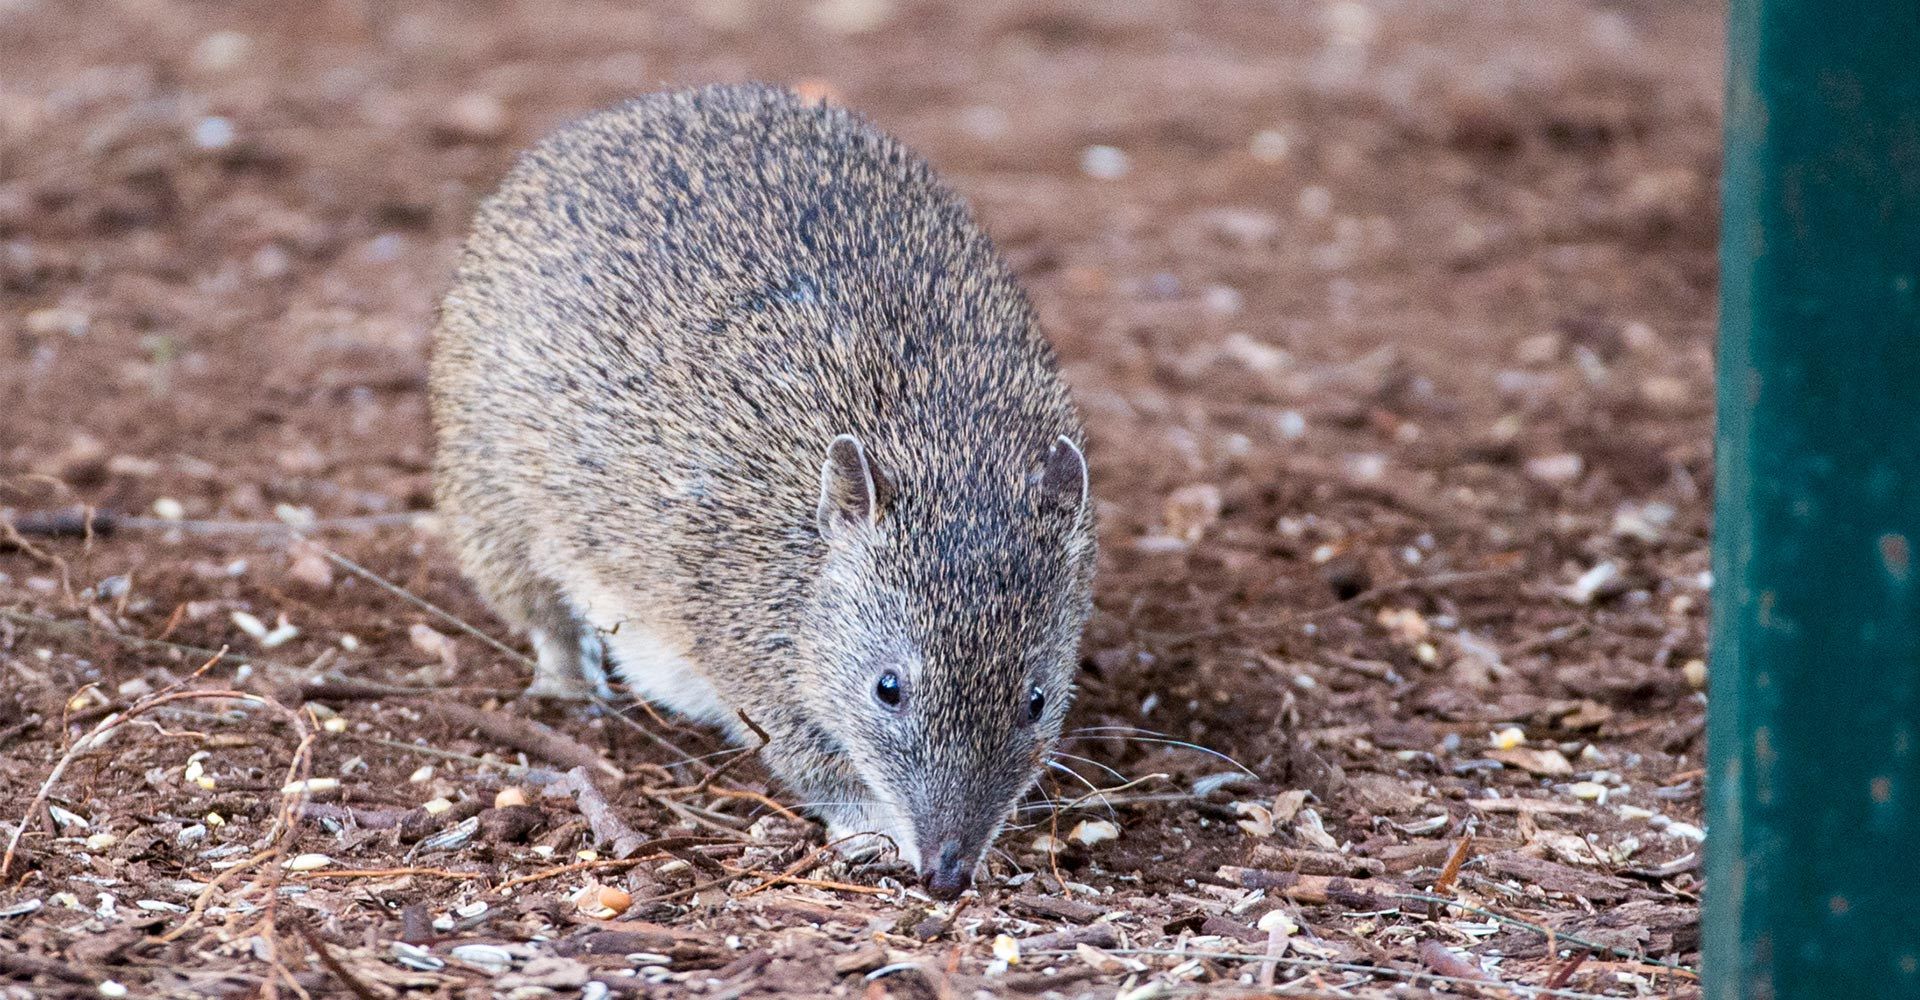 Warrawong Sanctuary to Reopen - Bandicoot - Conjour Editorial - 1